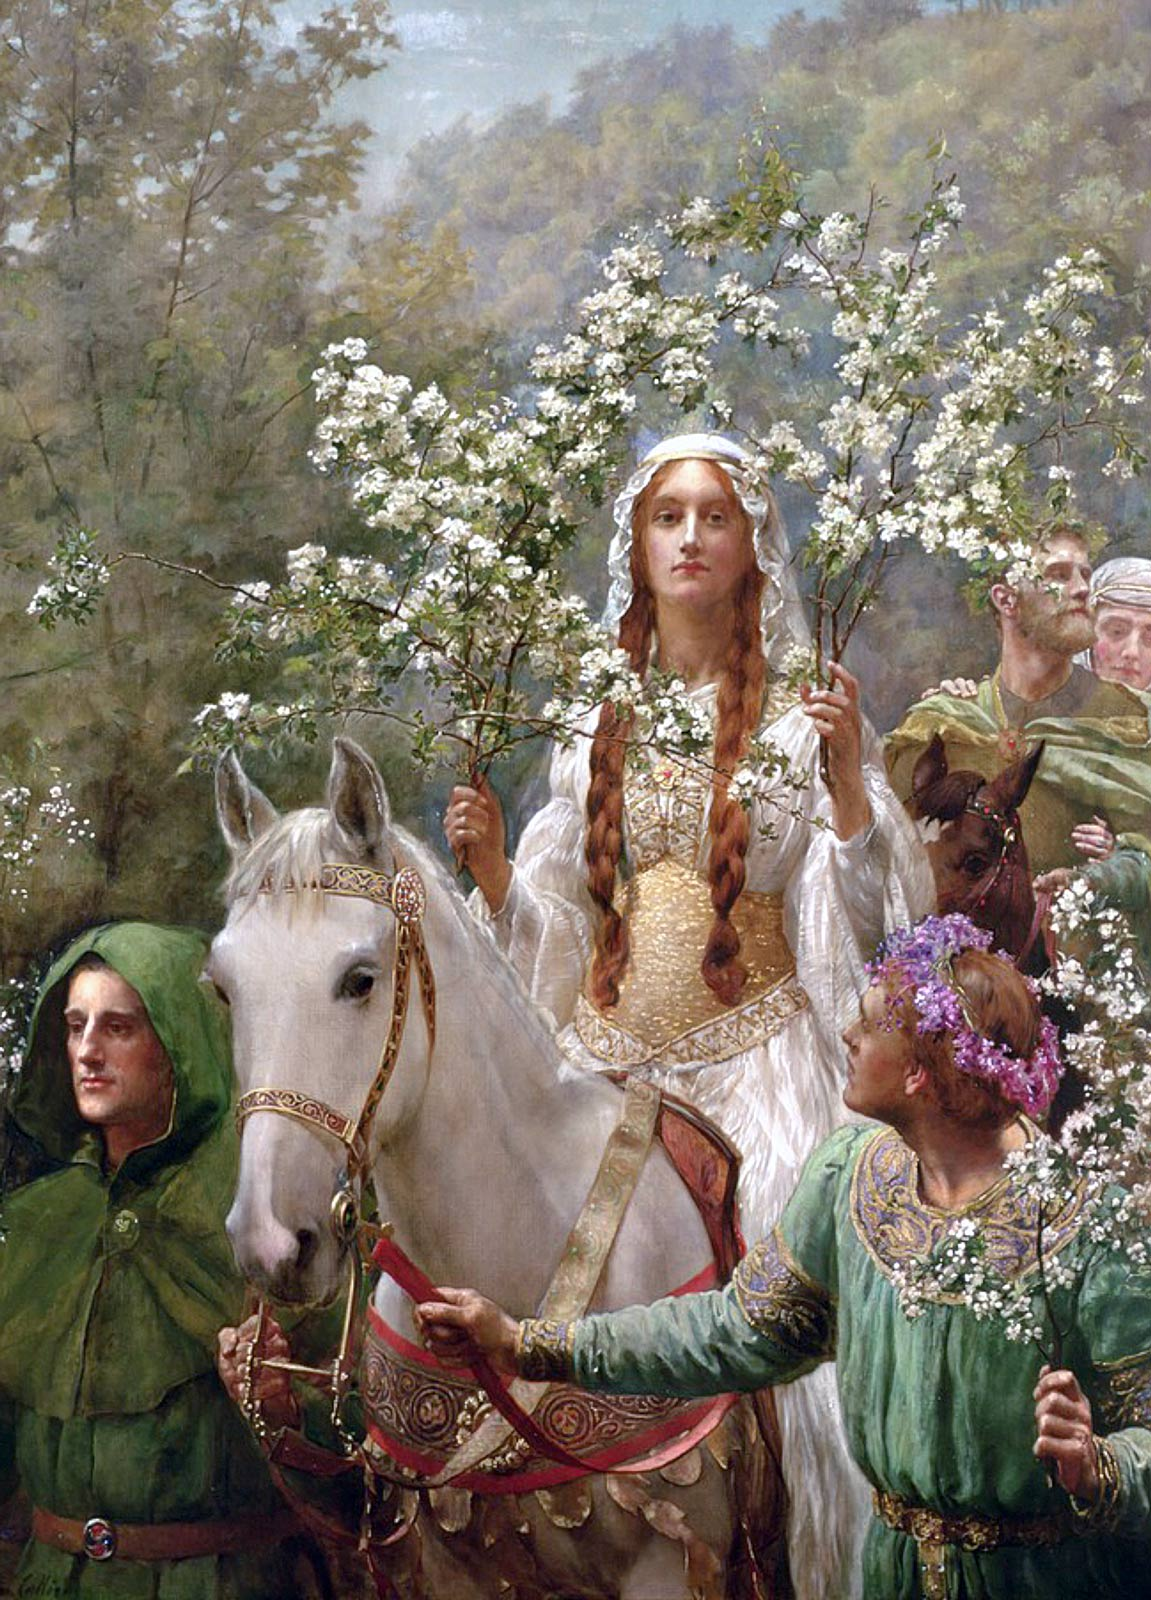 John Collier: Queen Guinevere's Maying, 1900